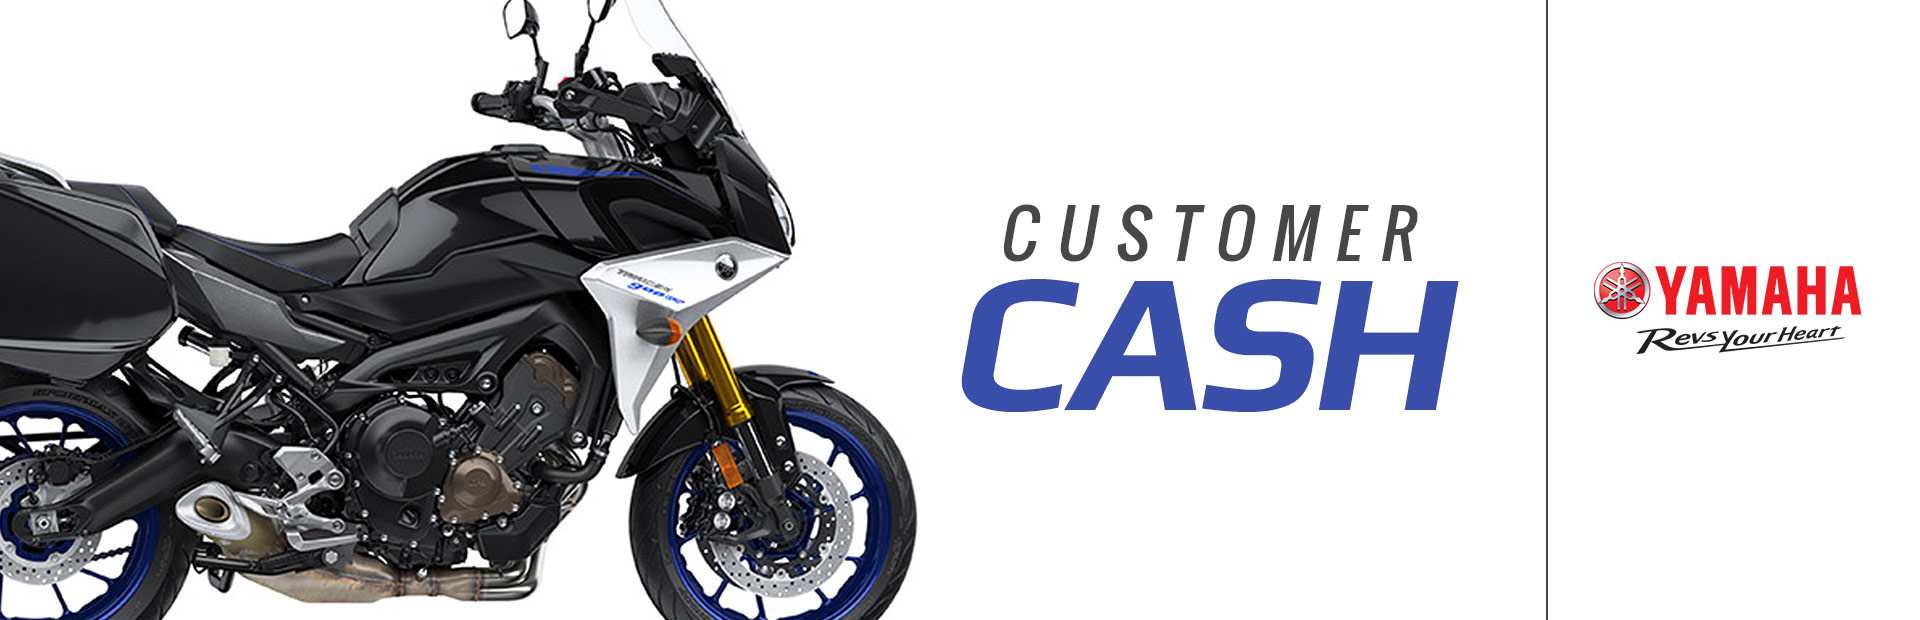 Yamaha: Customer Cash (ATV, SxS, Motorcycle)